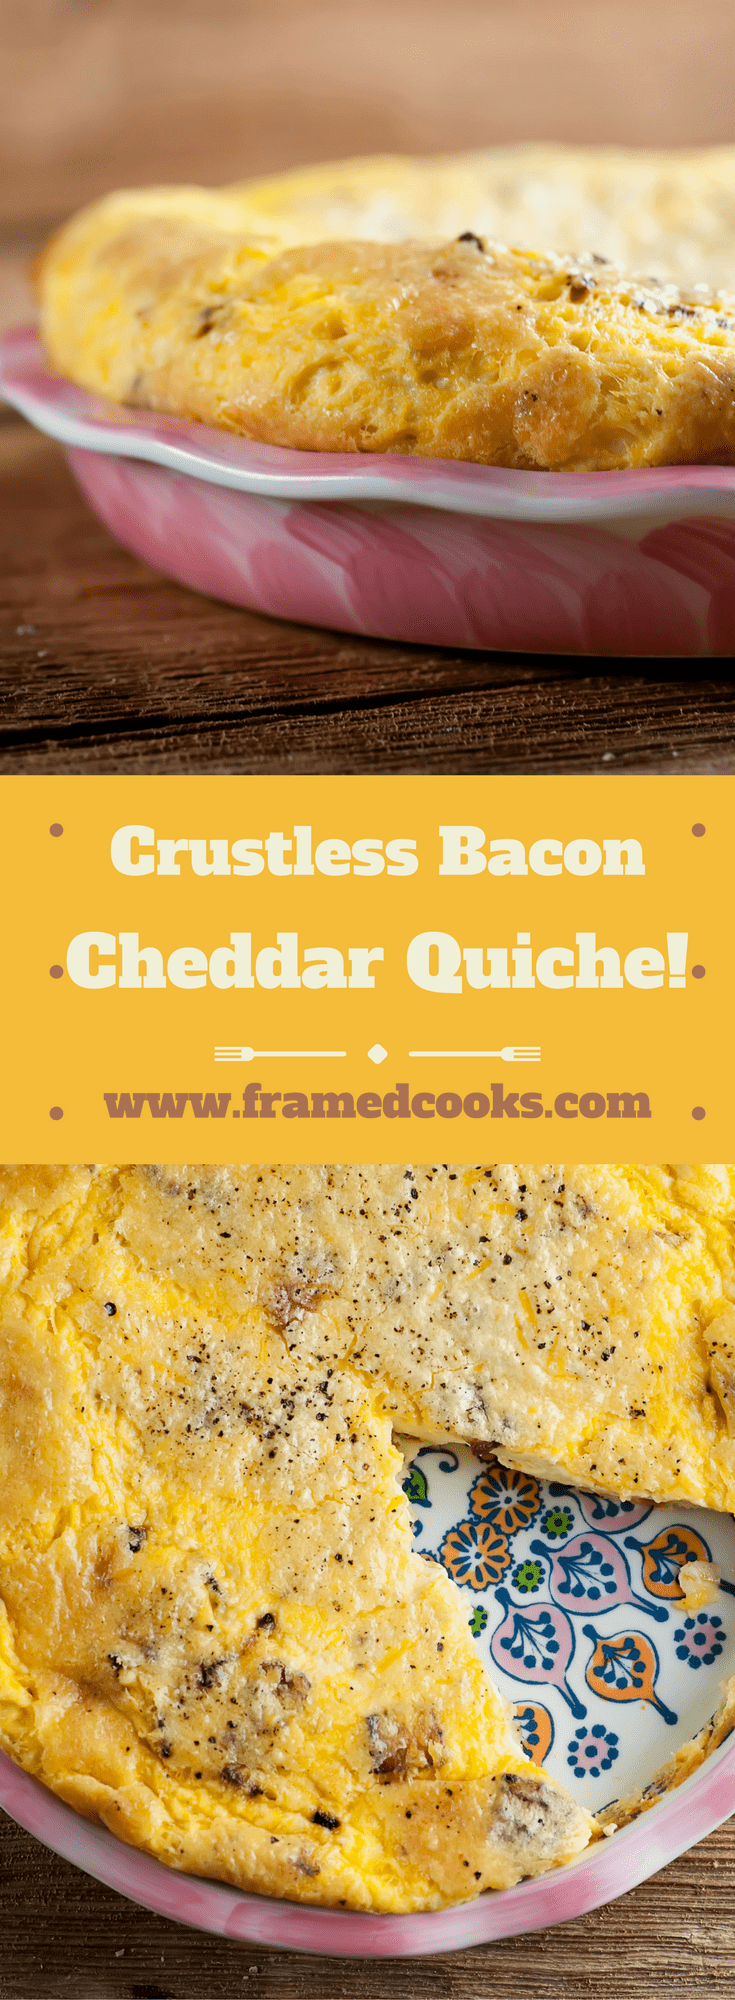 Lose the crust and keep the flavor with this easy recipe for a light and airy crustless bacon cheddar quiche.  A perfect delicious brunch dish!